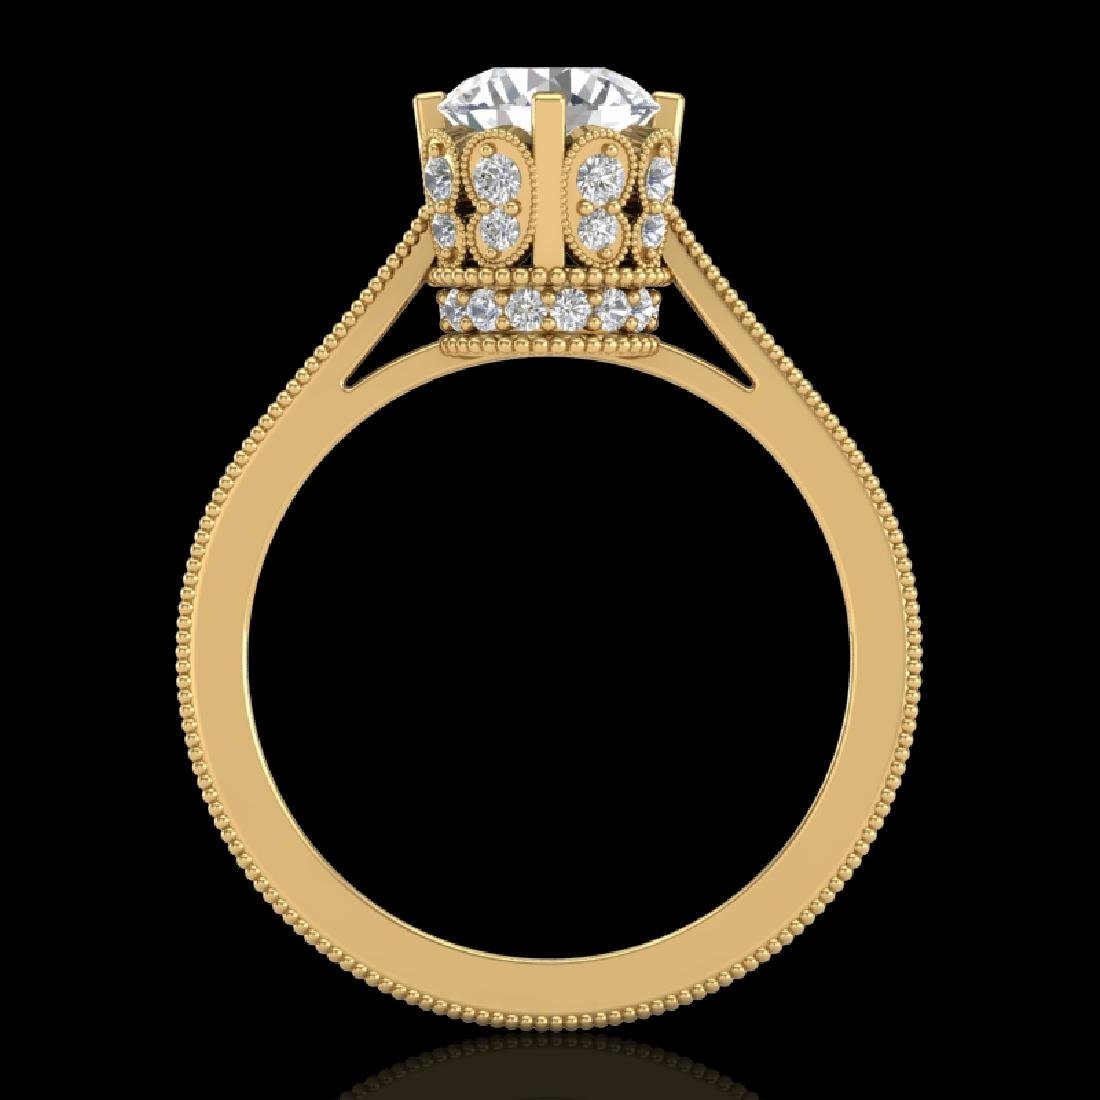 1.5 CTW VS/SI Diamond Art Deco Ring 18K Yellow Gold - 2